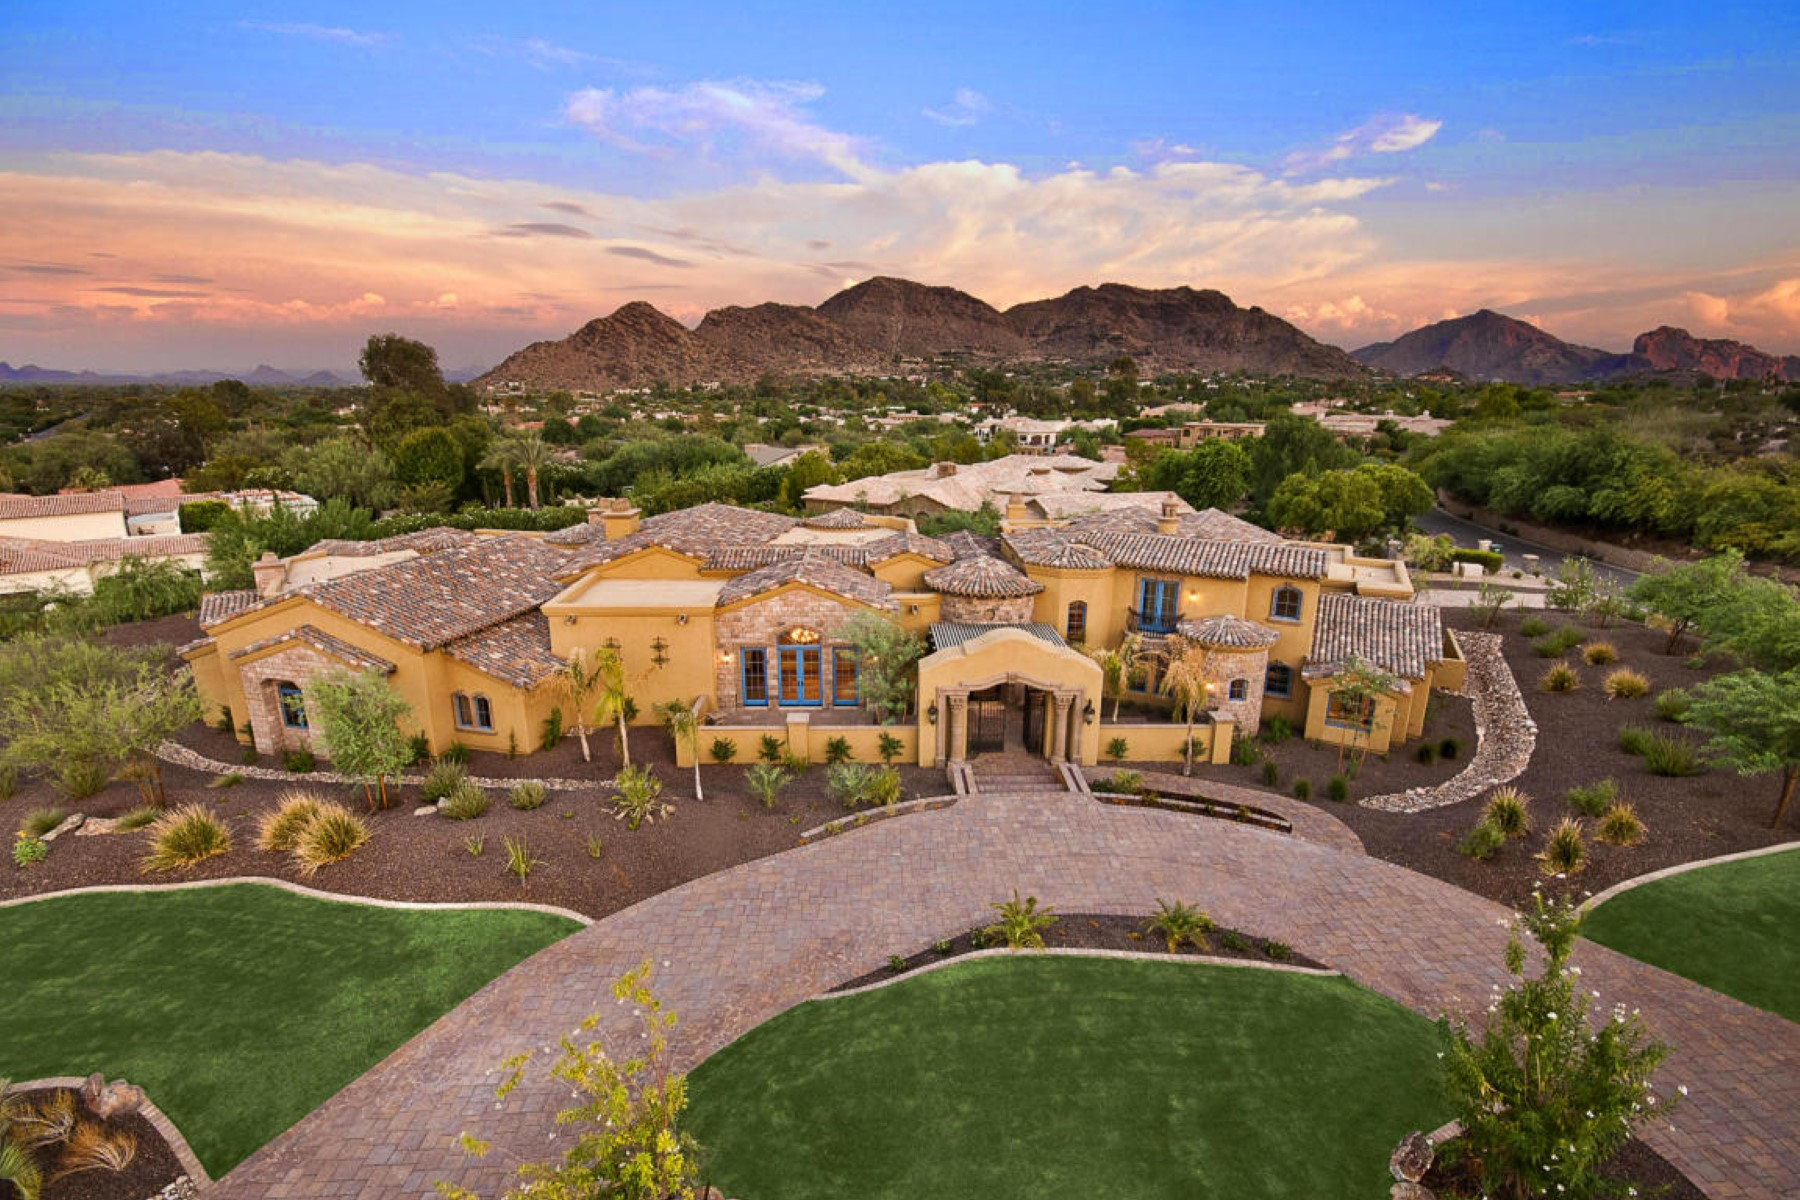 Casa Unifamiliar por un Venta en Wonderful artistic Italian masterpiece in Paradise Valley 8329 N Ridgeview Dr Paradise Valley, Arizona, 85253 Estados Unidos